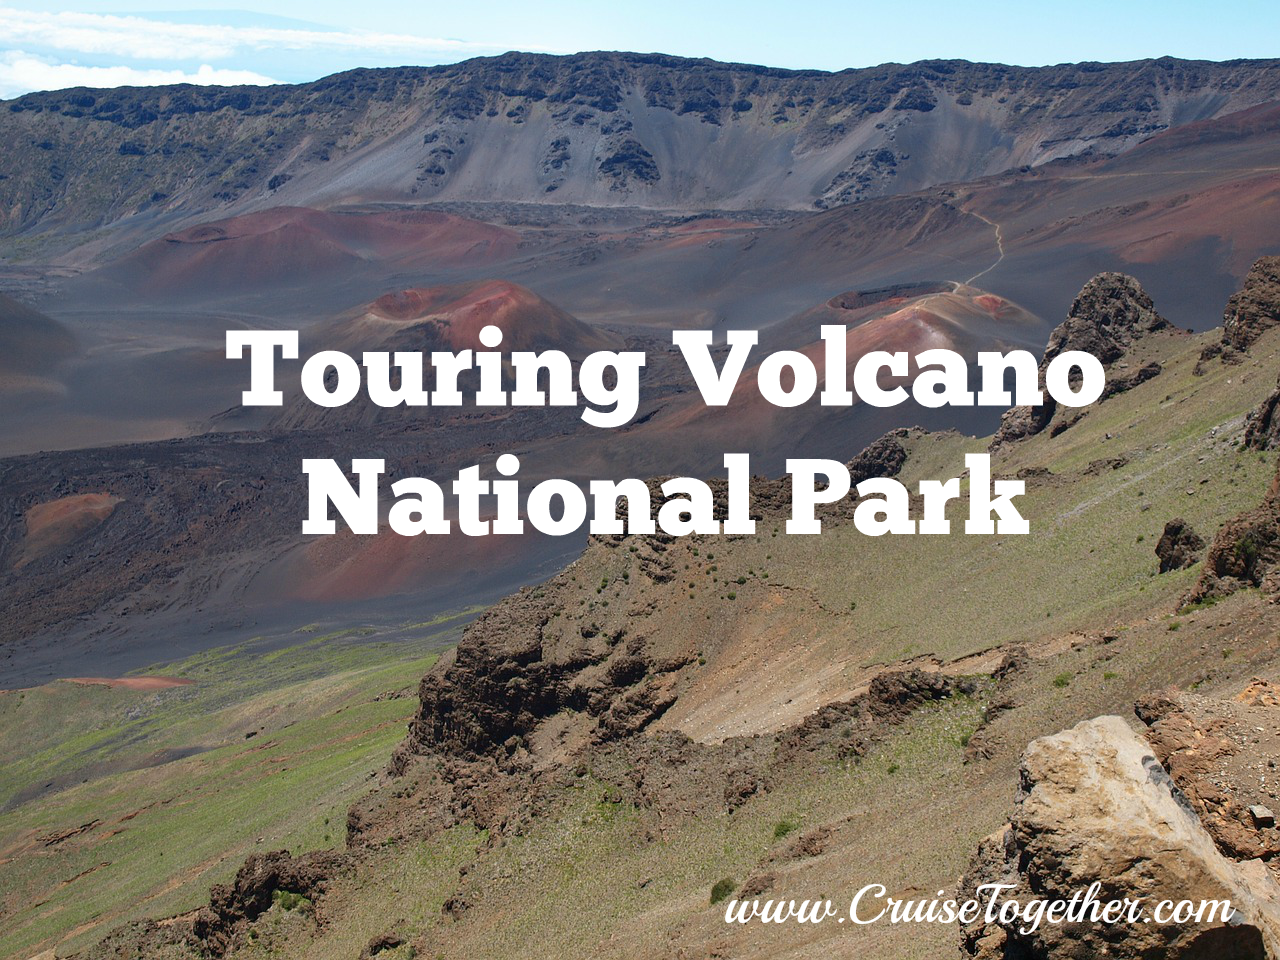 Touring Volcano National Park with CruiseTogether.com